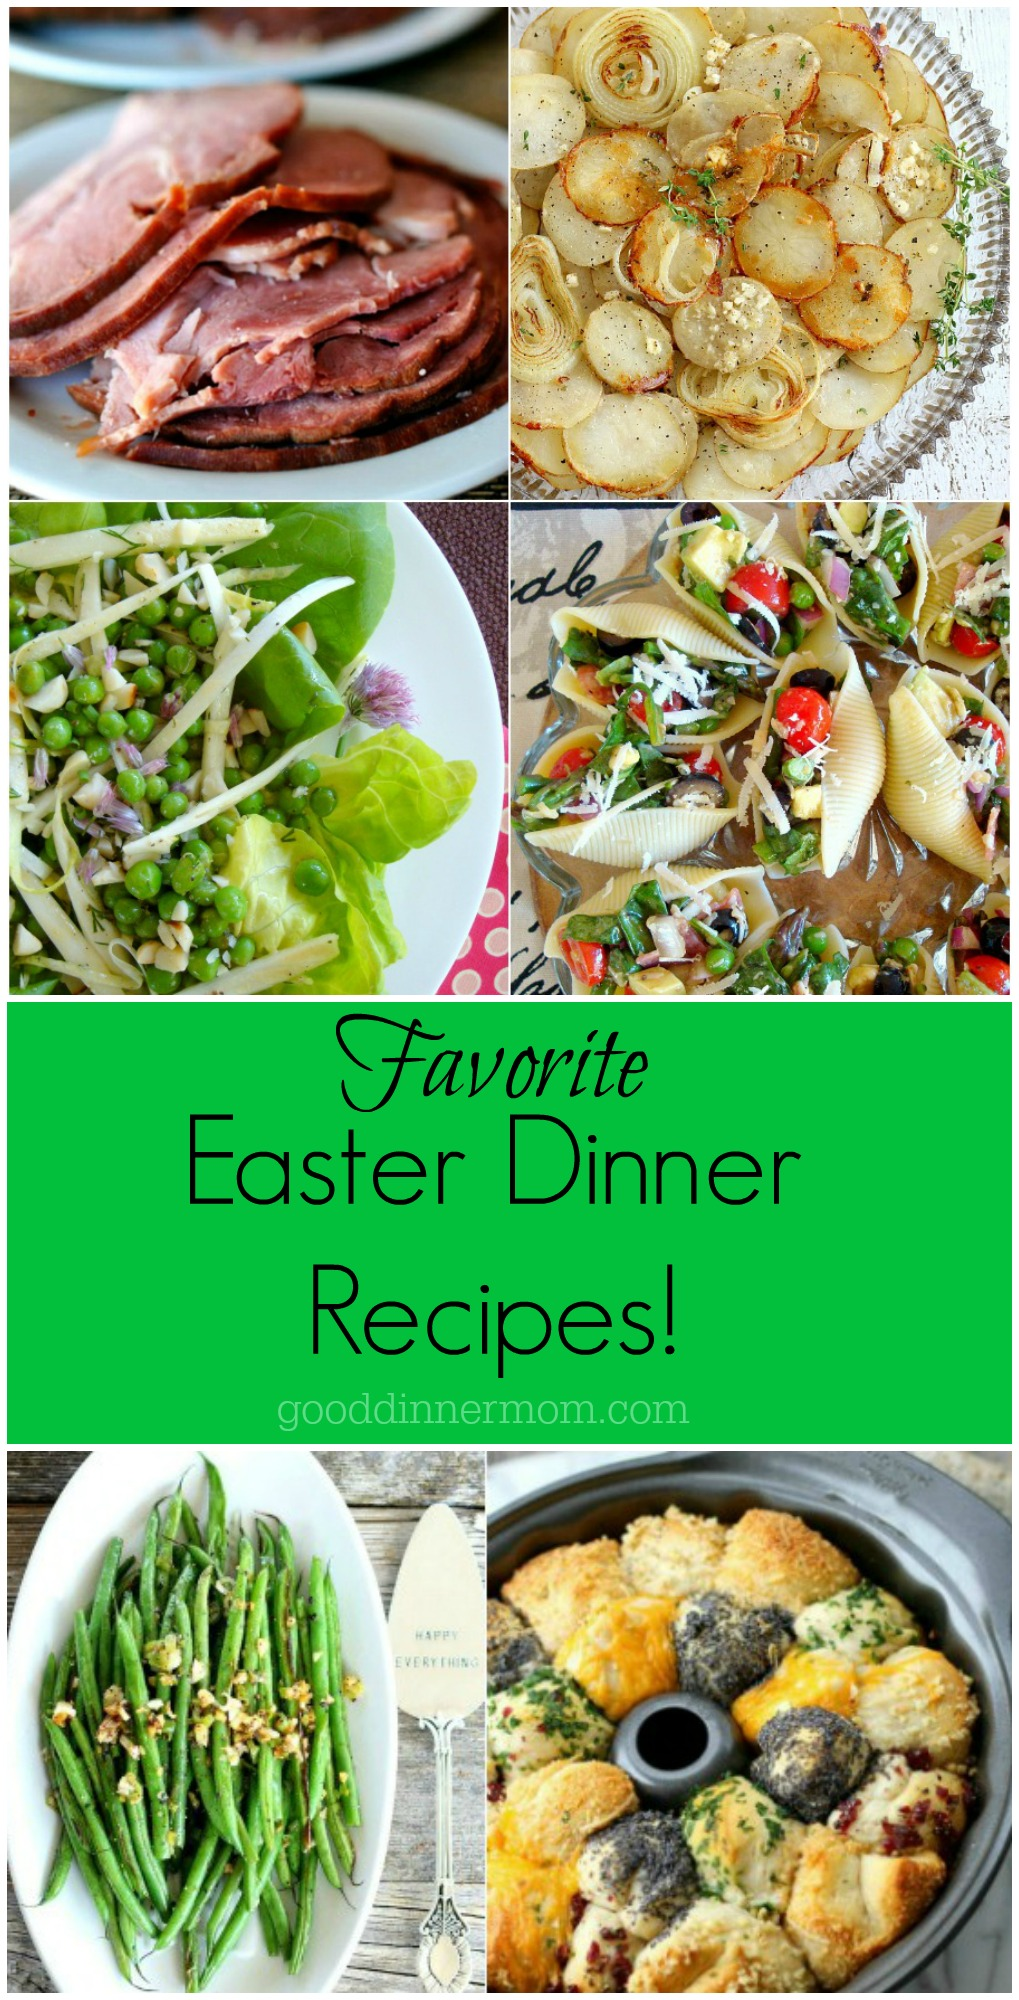 Here's a little collection of some of our favorite Easter Dinner recipes. Enjoy!